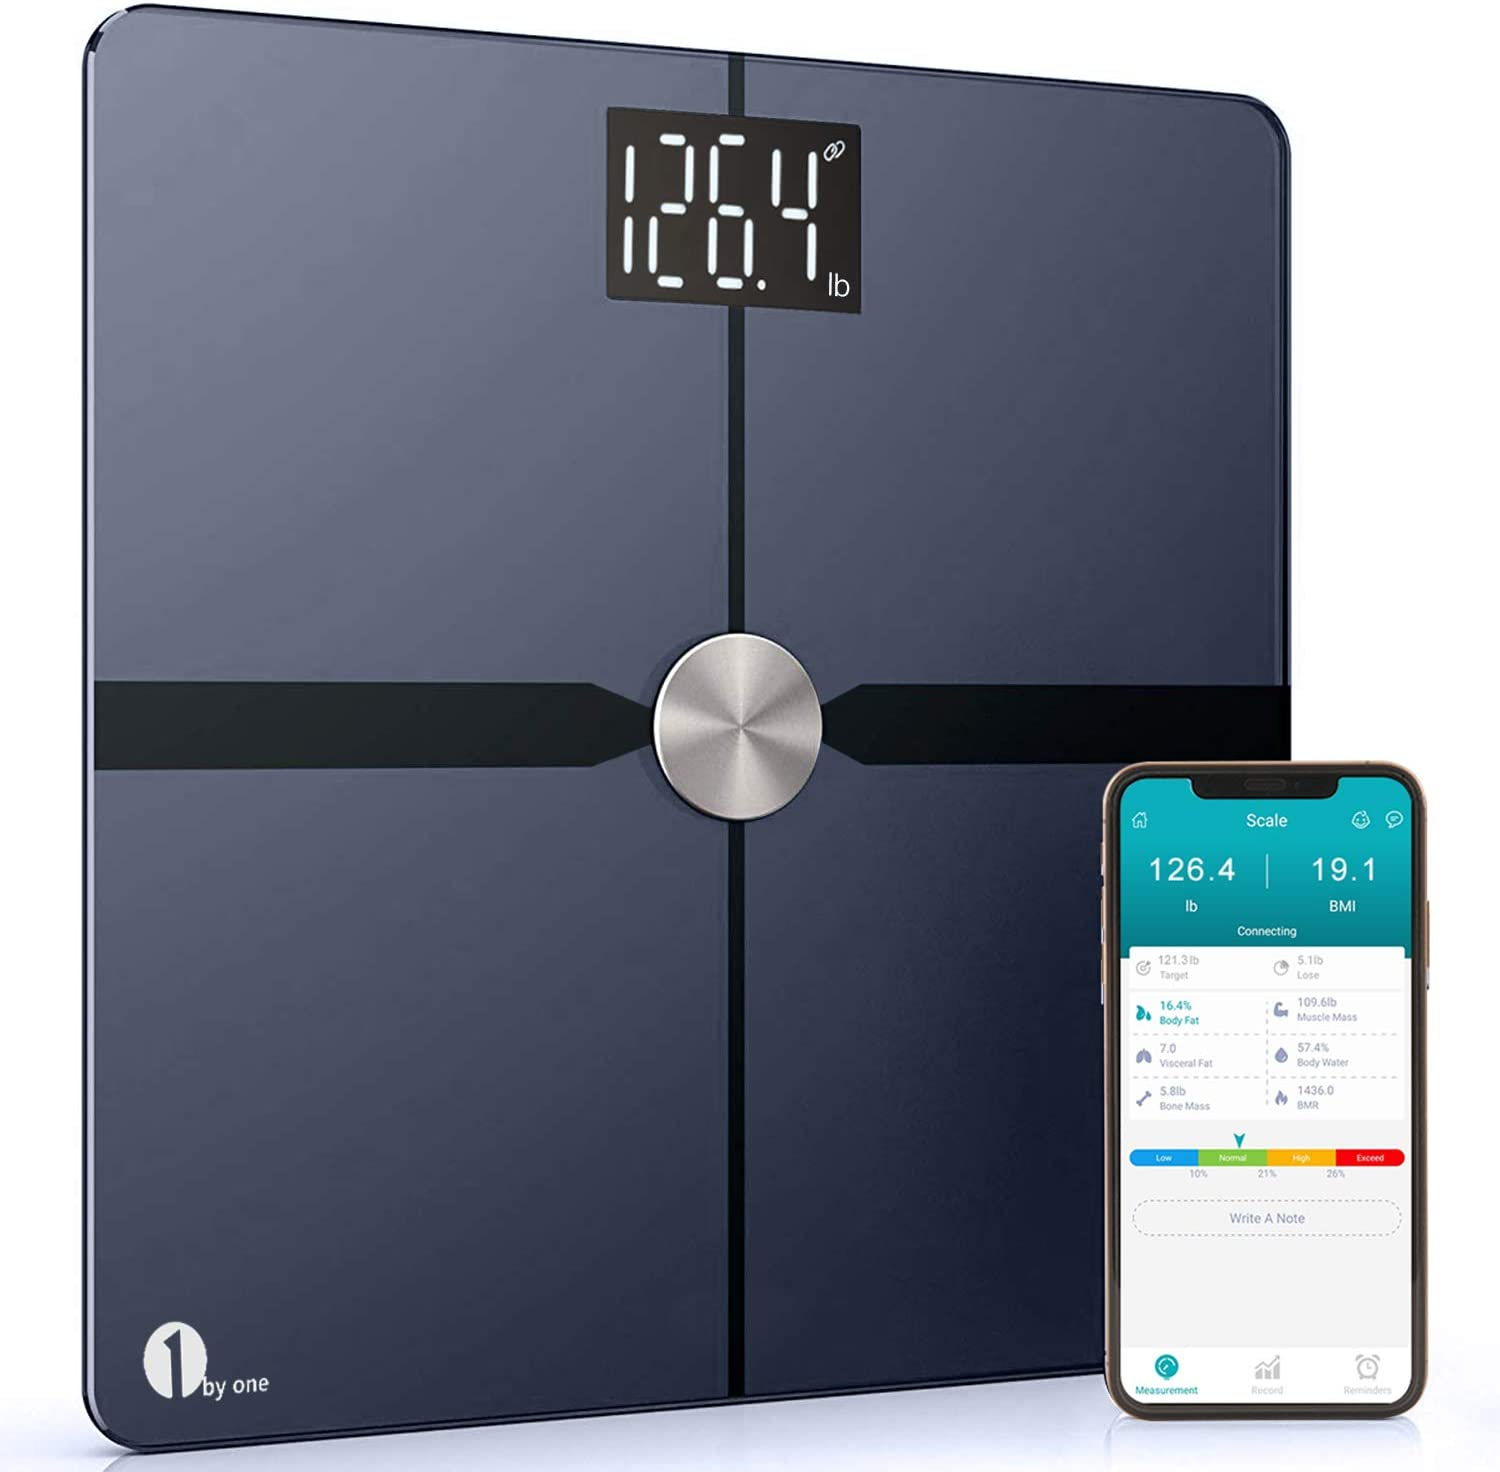 1byone Smart Bathroom Body Scale – Body Fat Scale with APP to Monitor 8 Essential Measurements, ITO Conductive Glass, FDA Approved Body Composition Analyzer Wireless BMI Weight Scale Black